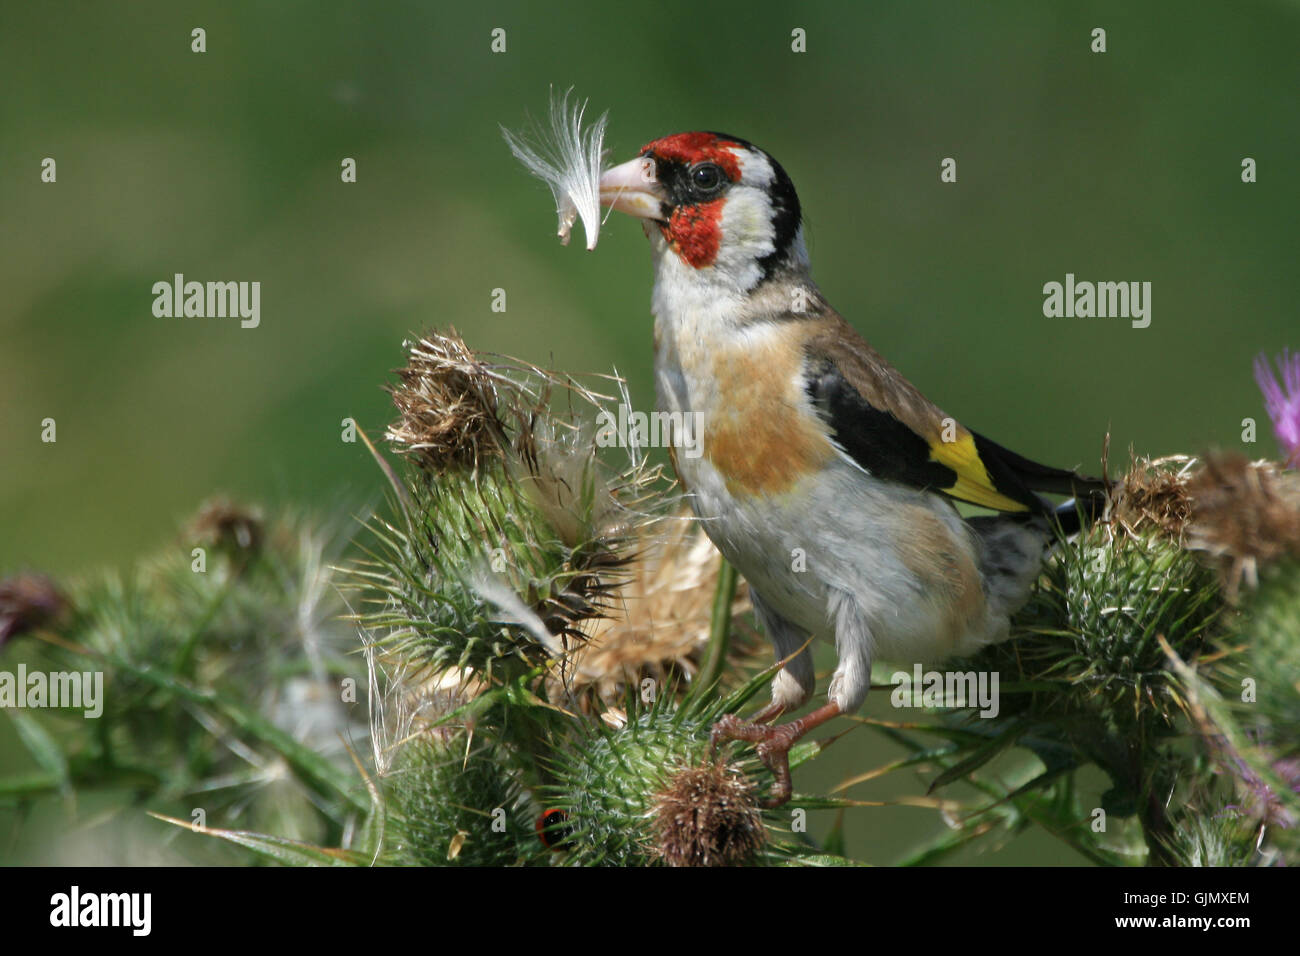 goldfinch on thistle - Stock Image